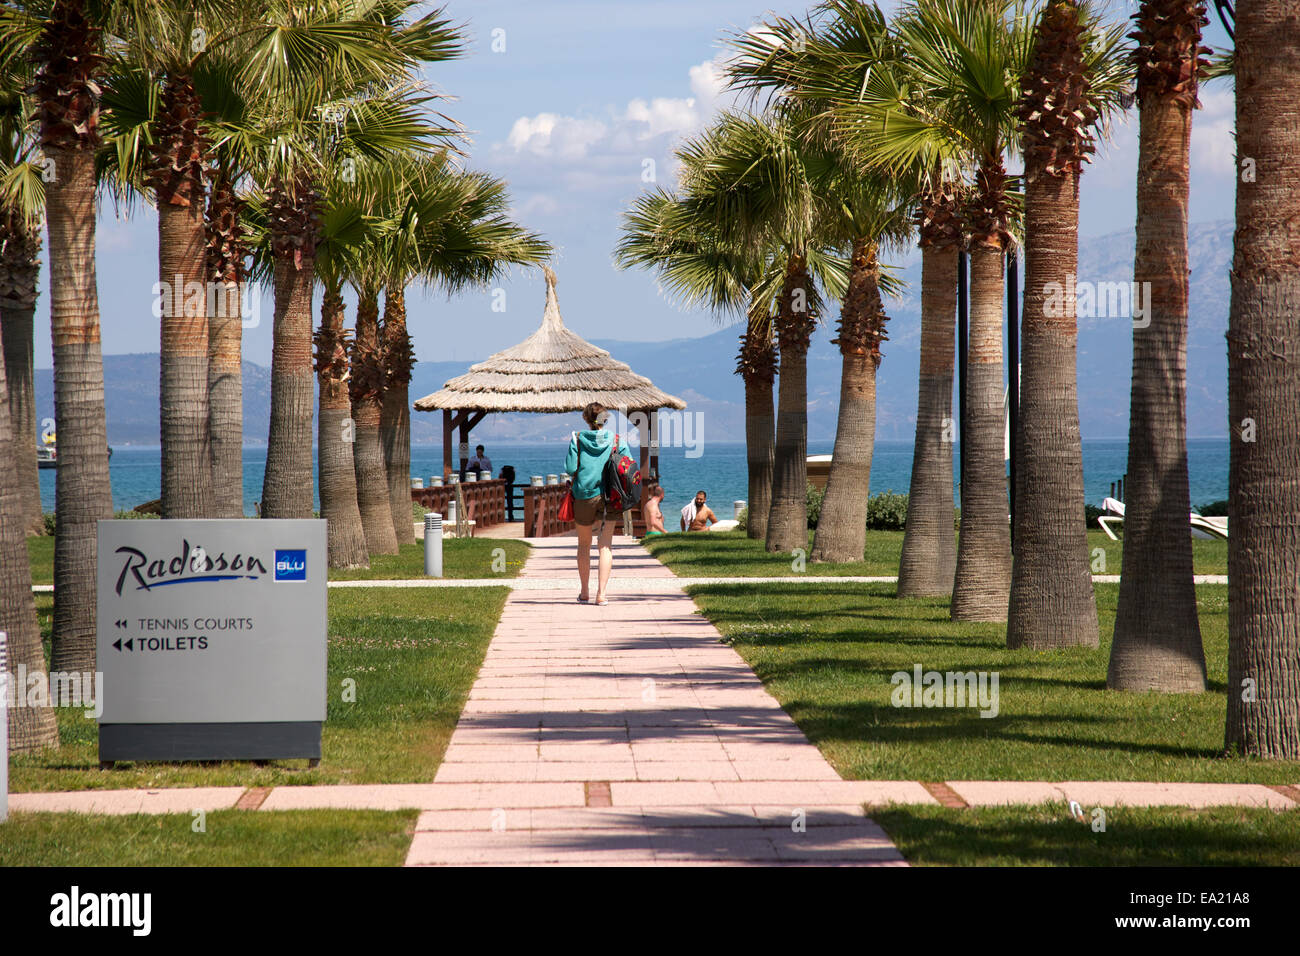 Radisson Blu hotel at Cesme, Izmir - Stock Image